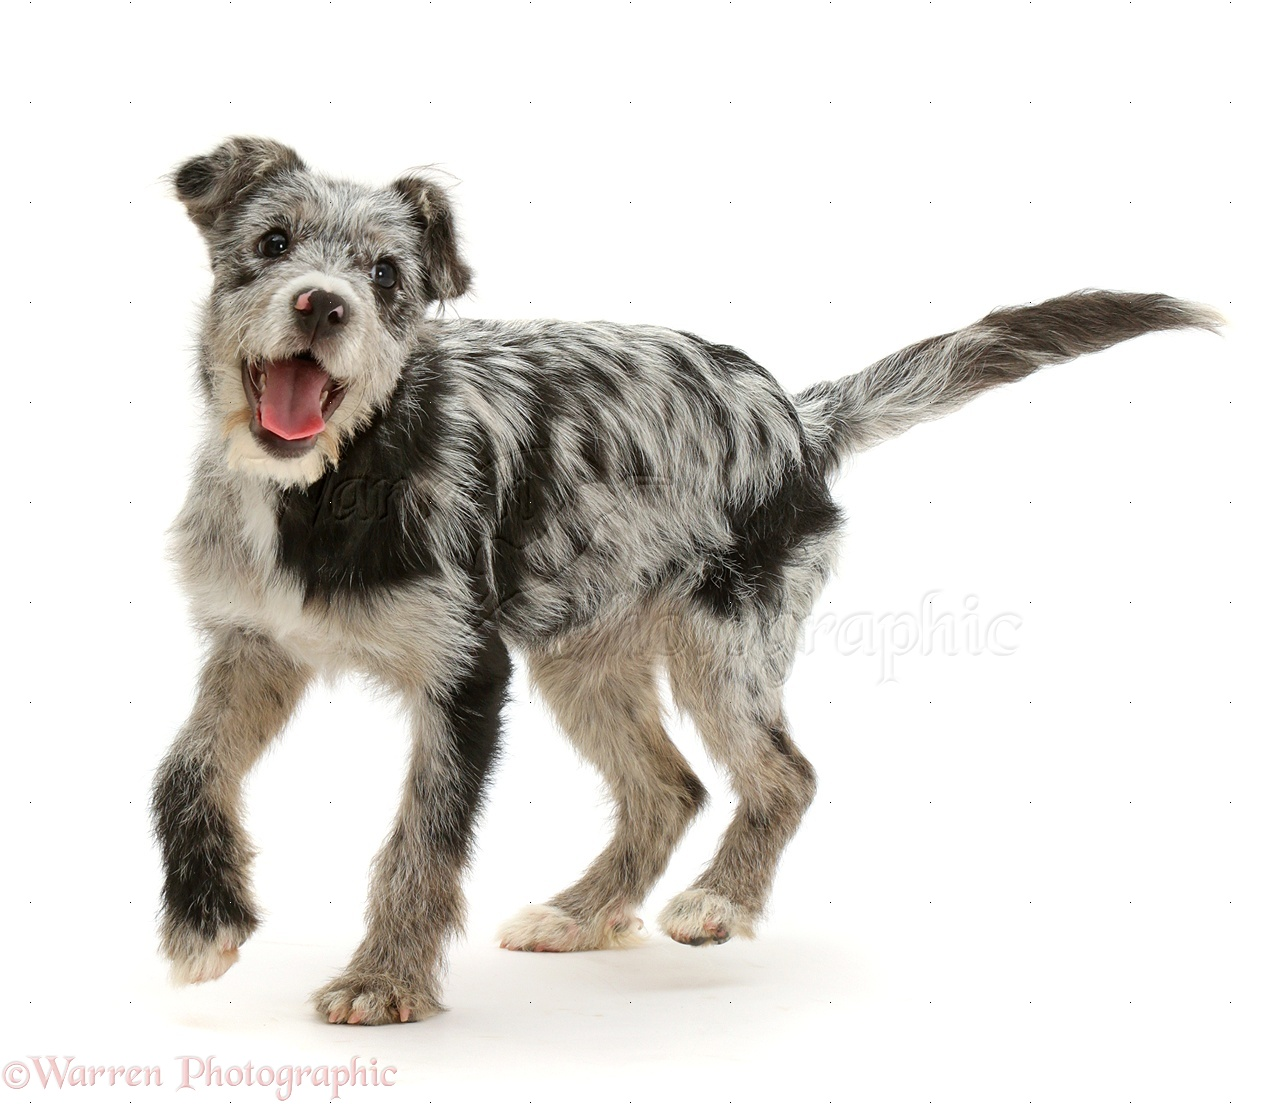 Dog: Blue merle mutt photo - WP42070 | 1261 x 1104 jpeg 335kB